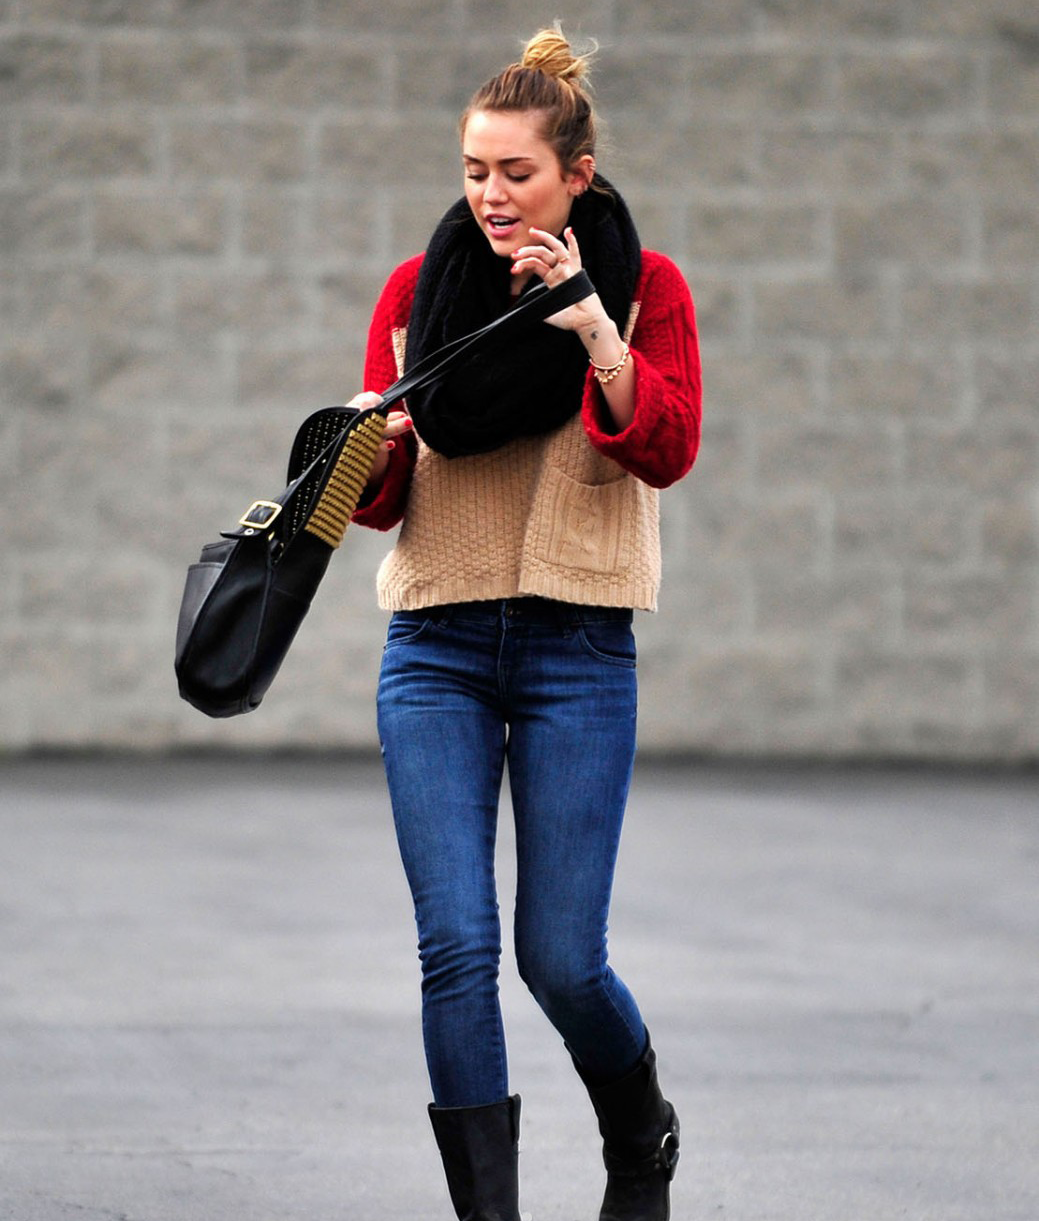 Miley Cyrus is looking super cute walking around in Toluca Lake (photos)